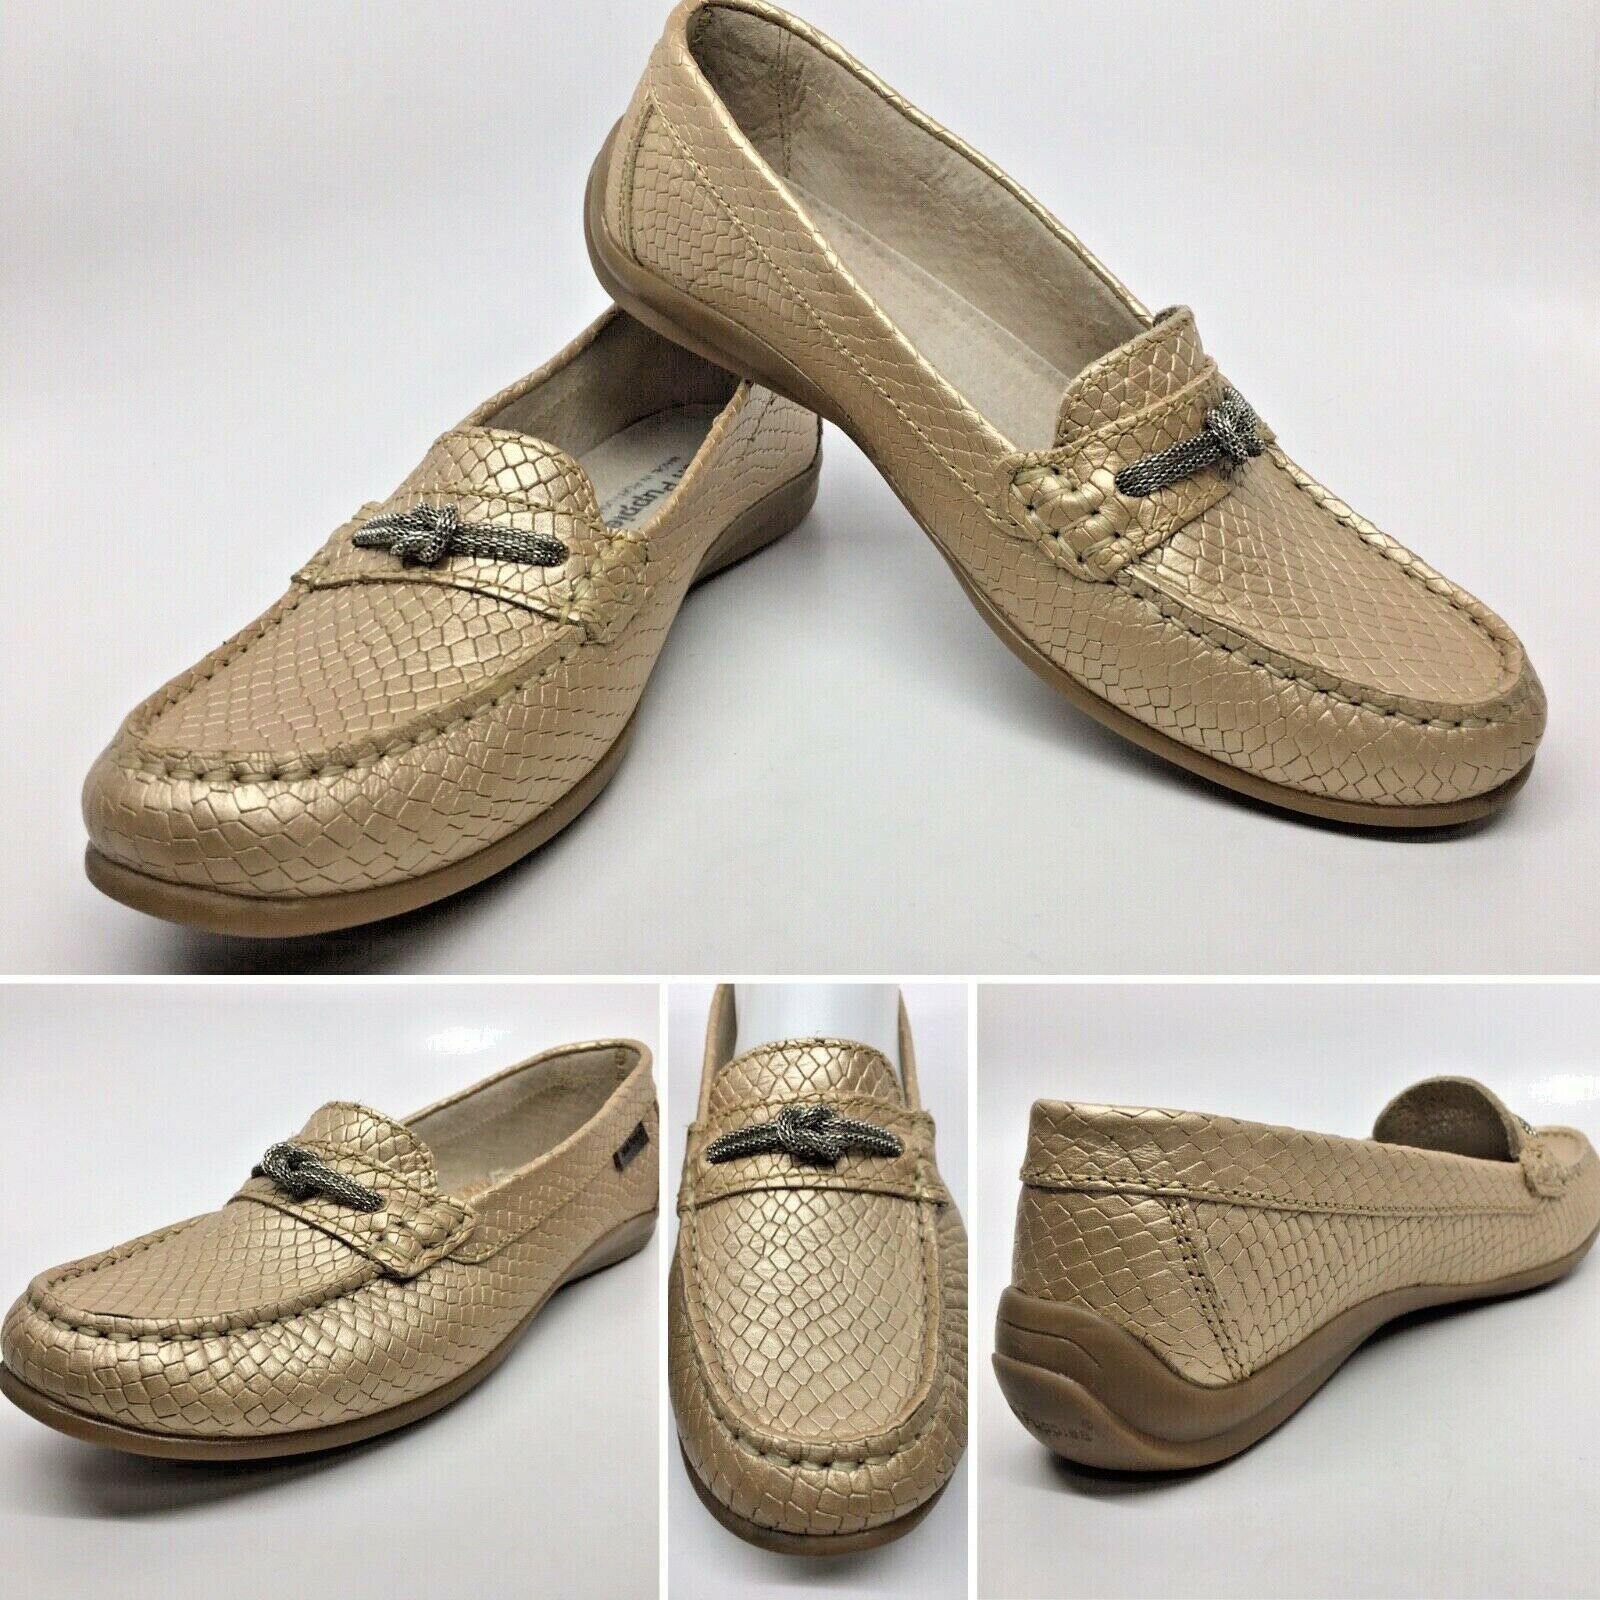 HUSH PUPPIES gold Metallic Chain Knot Snake Mocc Slip-On Loafers Portugal Sz 37